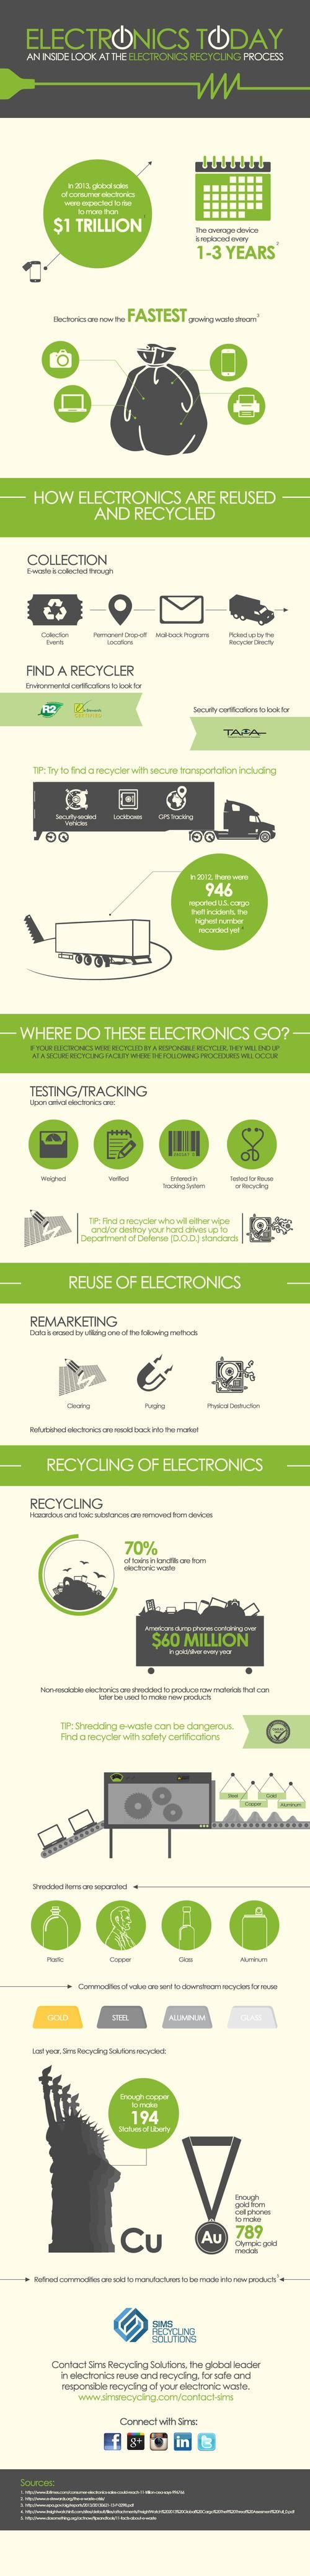 EBN - Hailey Lynne McKeefry - Infographic: Looking at the End of Life of Electronics